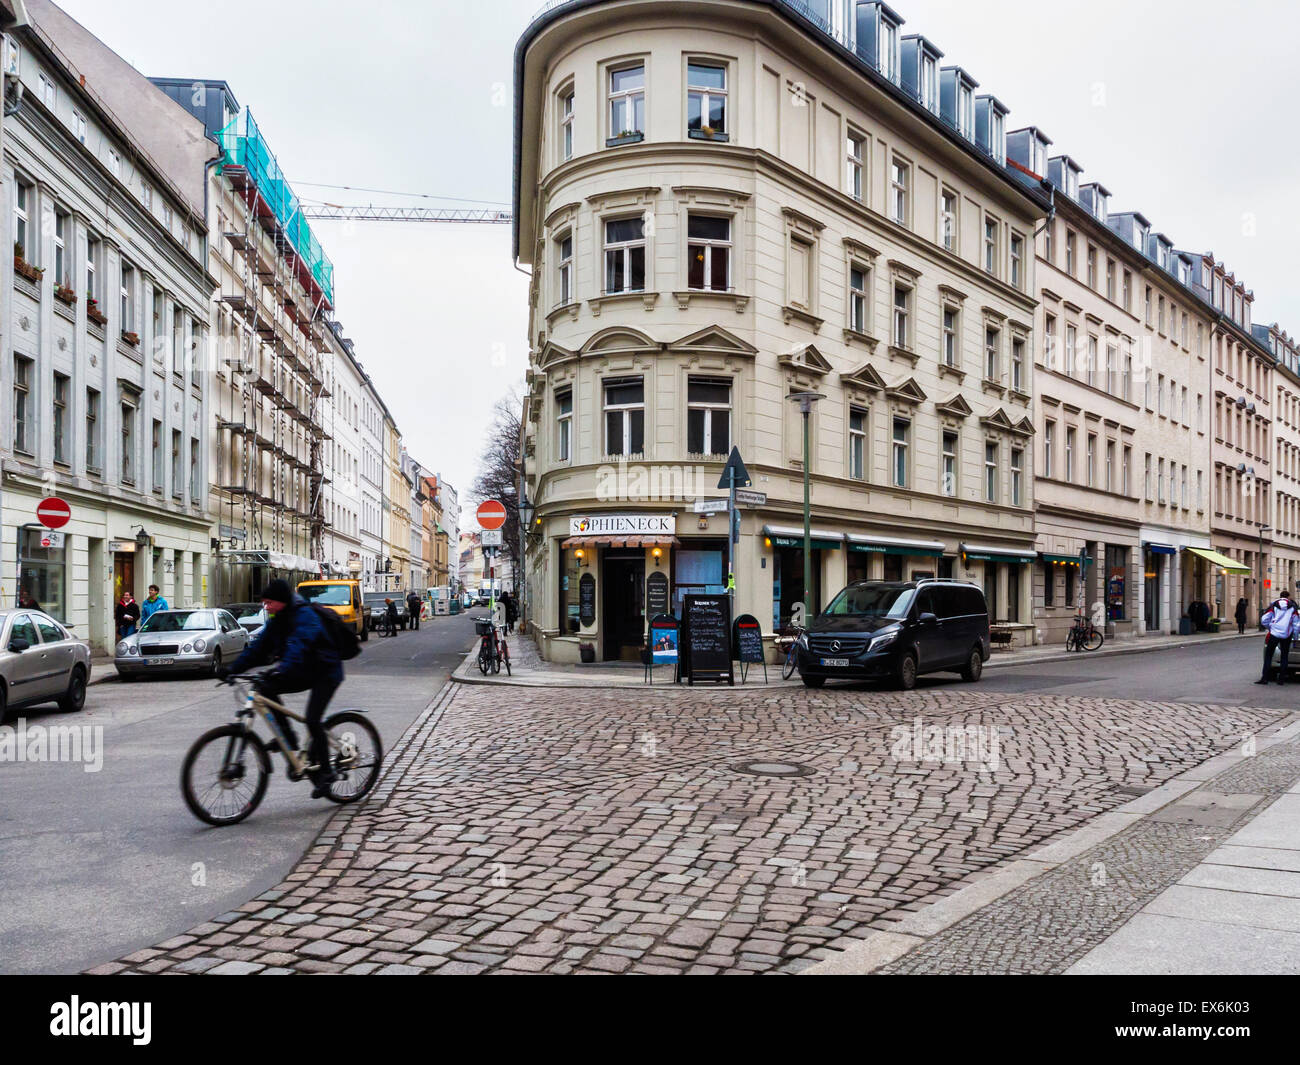 Berlin Sophieneck Bar And Restaurant Exterior And Berlin Street View With Apartment Buildings Stock Photo Alamy